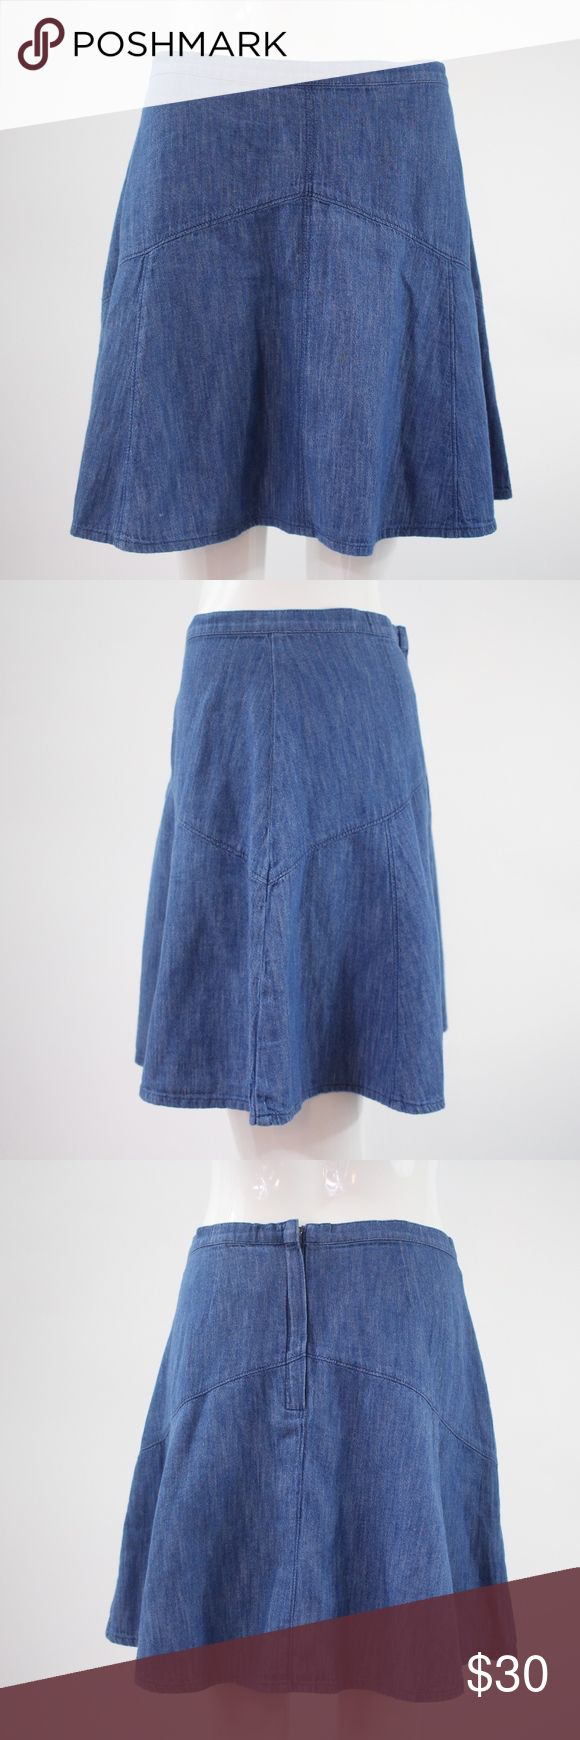 Madewell Denim Skater Skirt Size 8 Waist 30 inches  Length 17 inches Madewell Skirts Circle & Skater